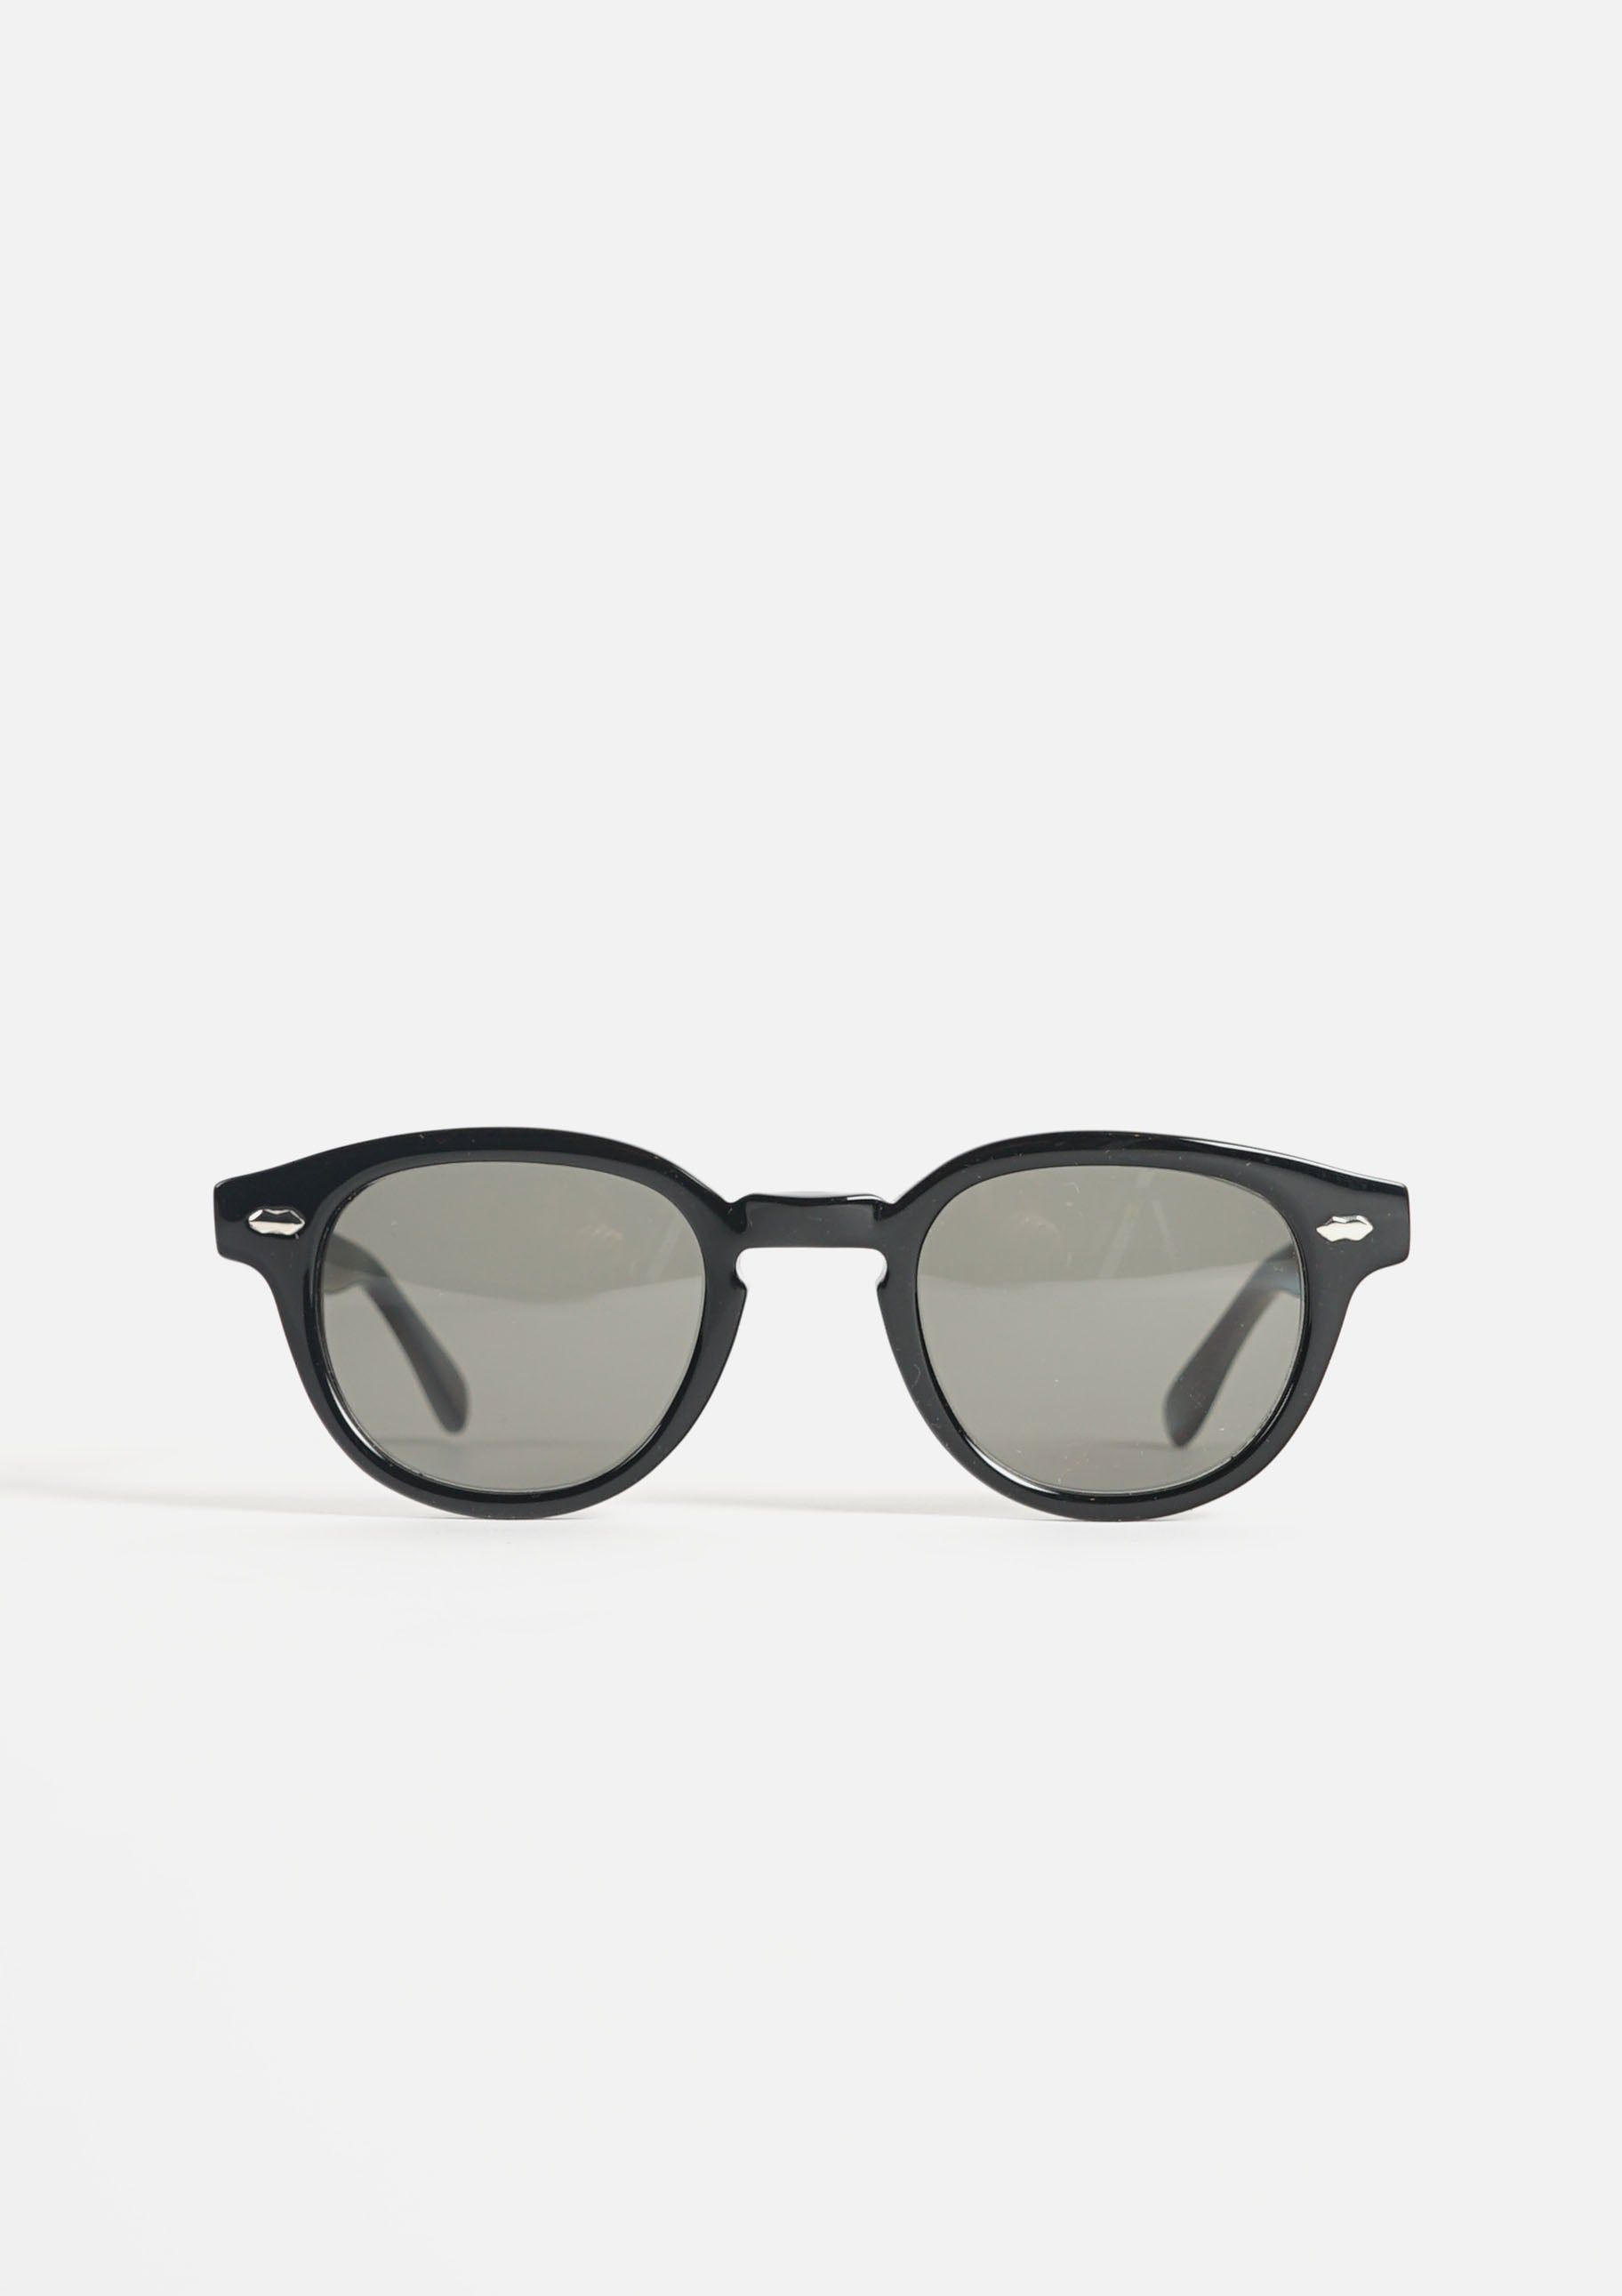 MODEL 511 Sunglasses  Black